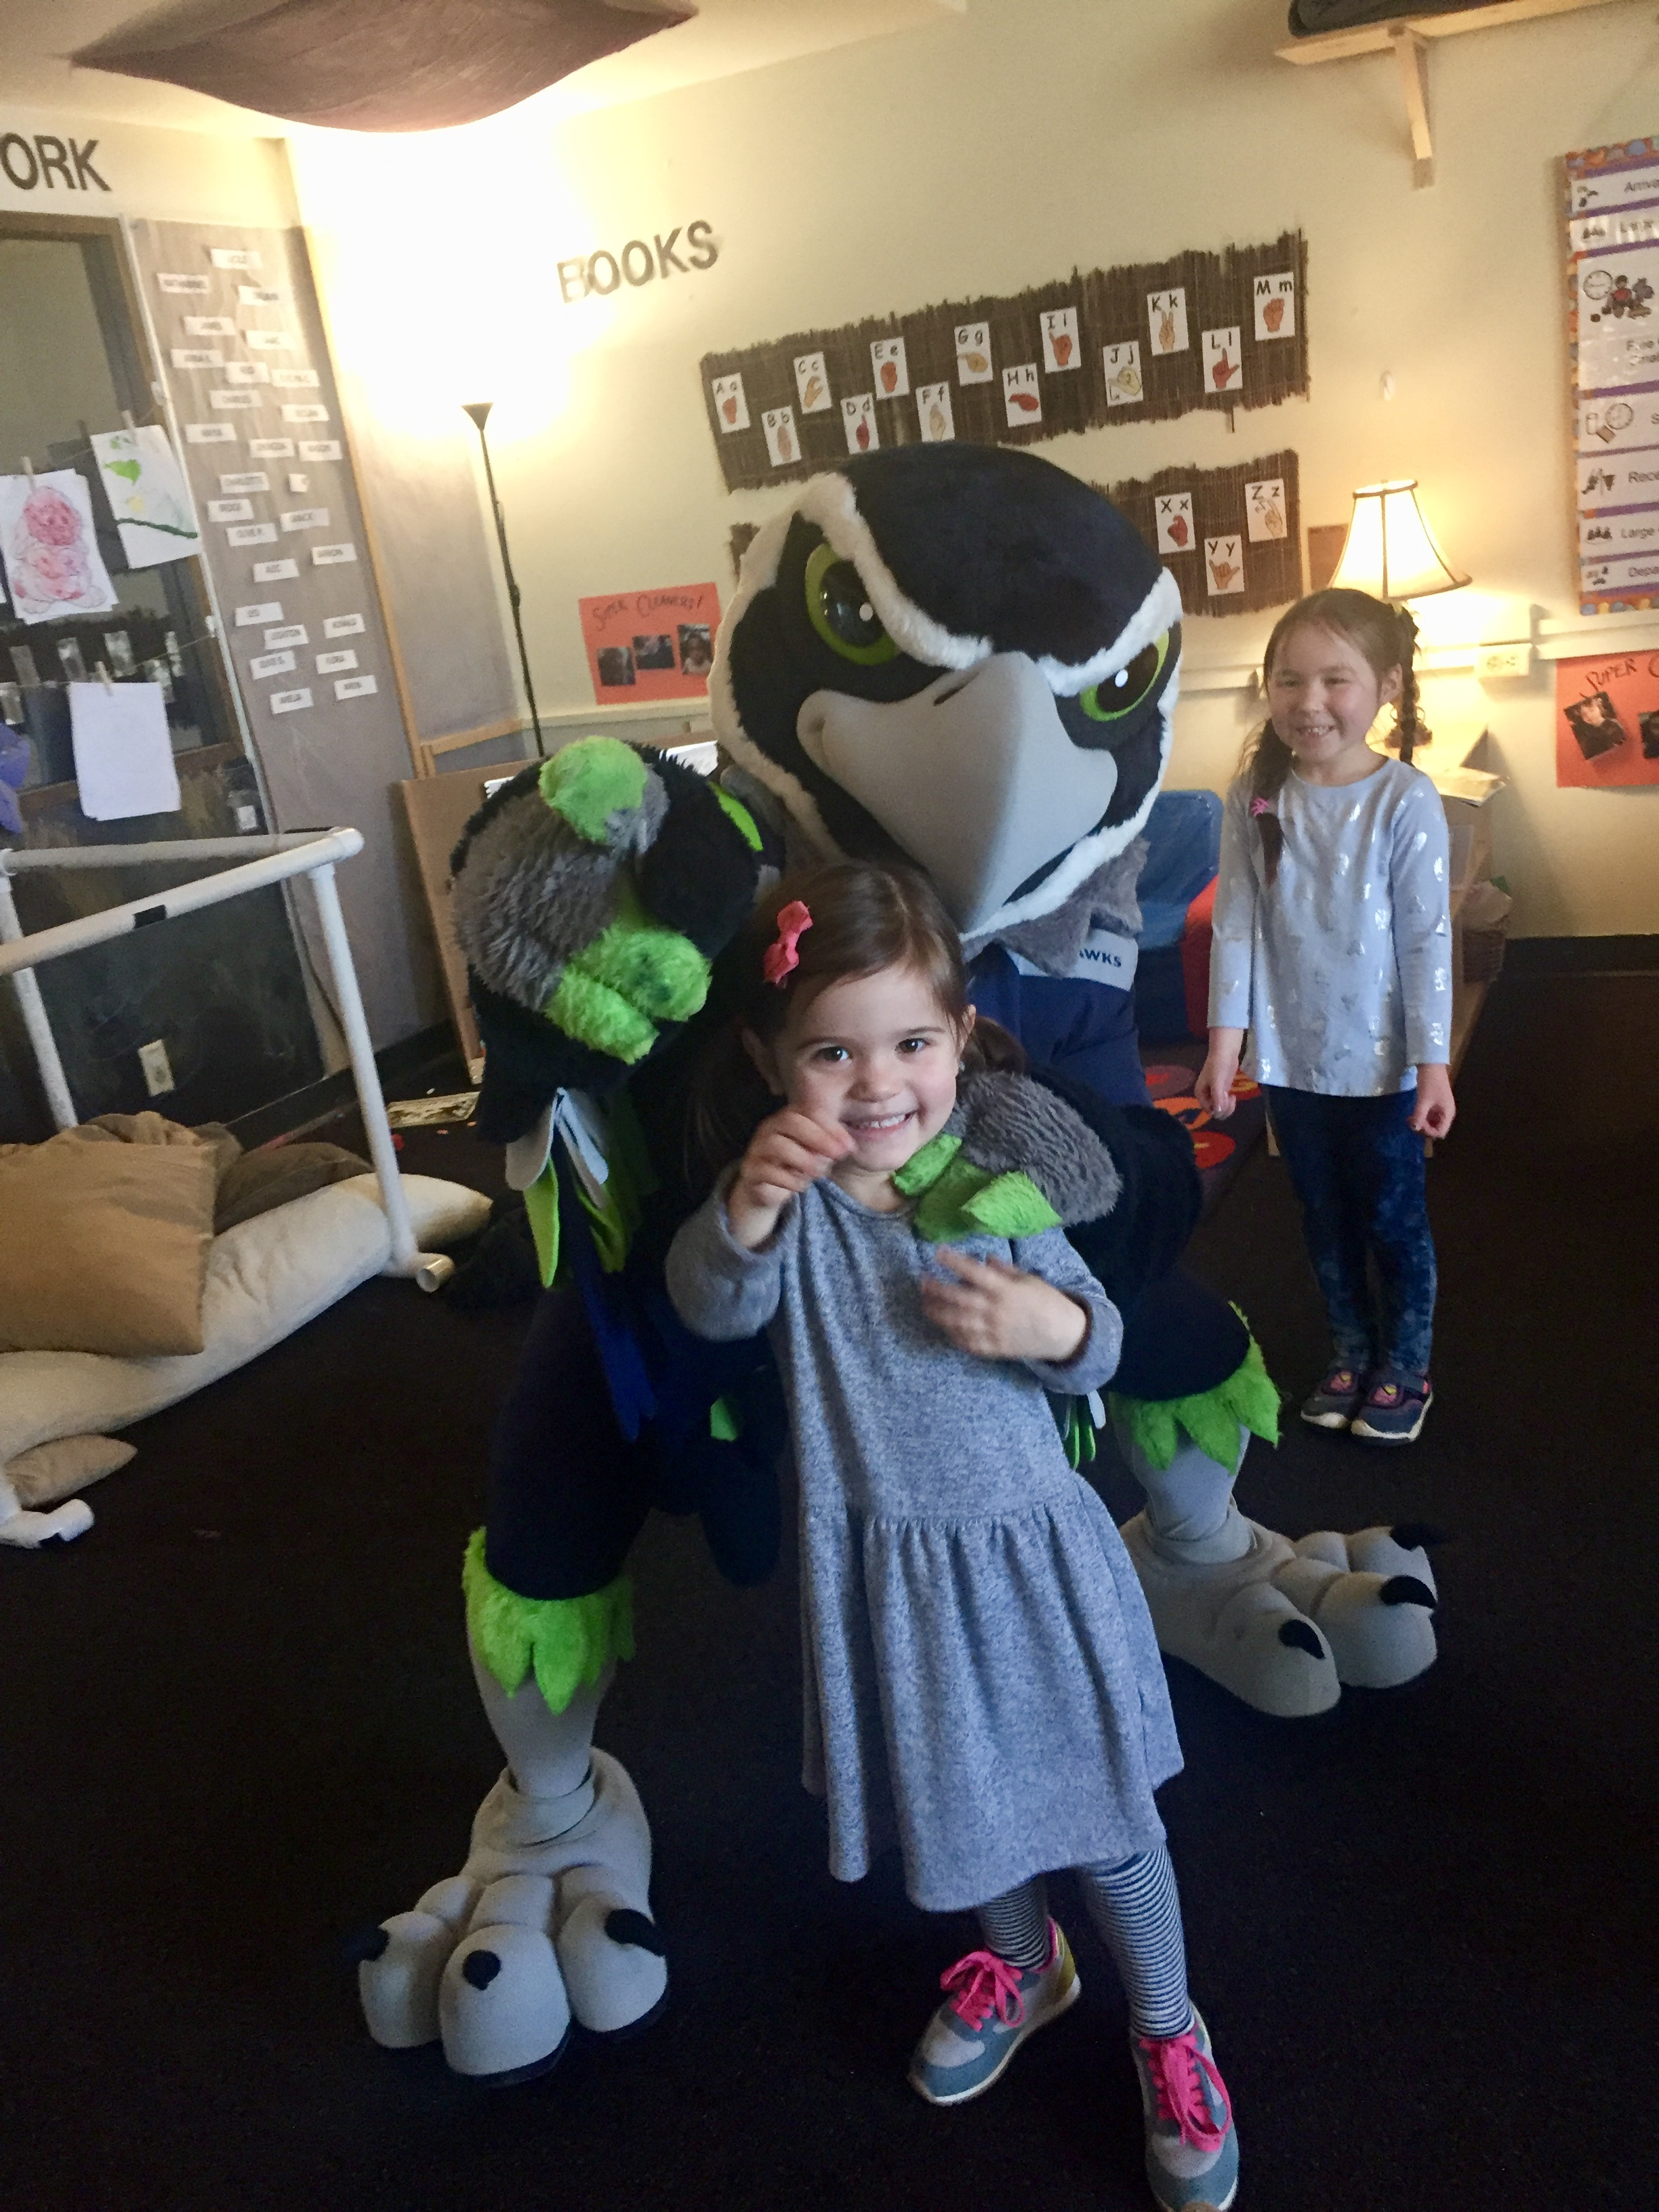 SURPRISE - I saw you could have Blitz come and give your special person a surprise valentine and well, it sounded like a silly thing to do. It was. But oh so worth it. Especially when Blitz visited the girl's classroom. Cue kids going crazy. Well worth every cent.